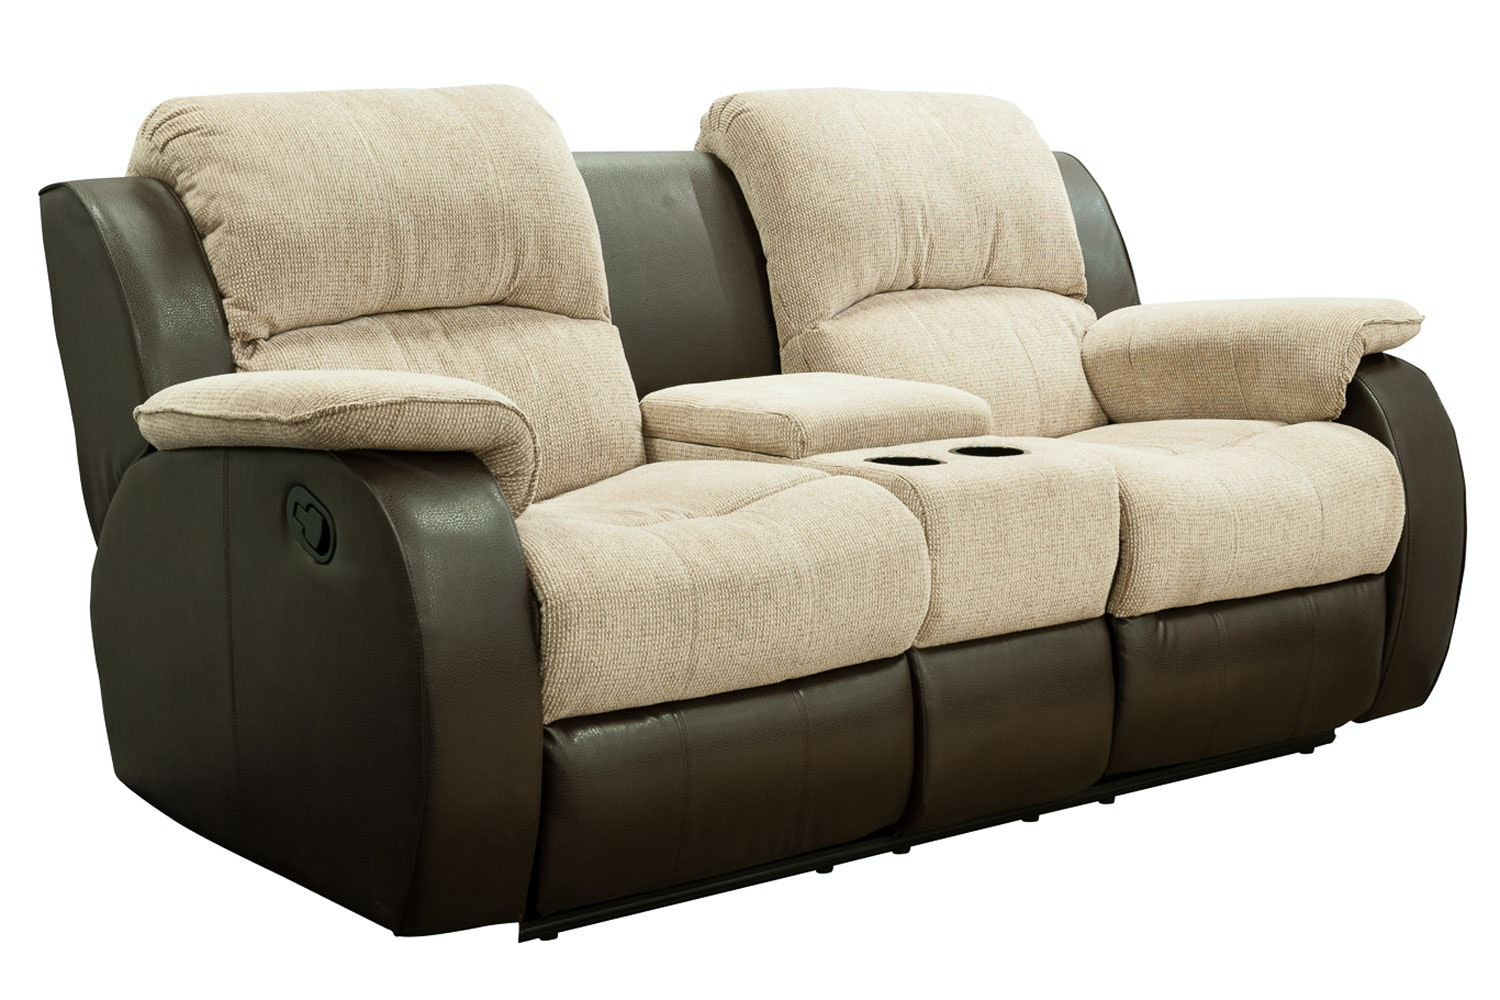 Reclining Console Sofa Hereo Sofa : Kayde Console angle from hereonout.net size 1500 x 1000 jpeg 129kB